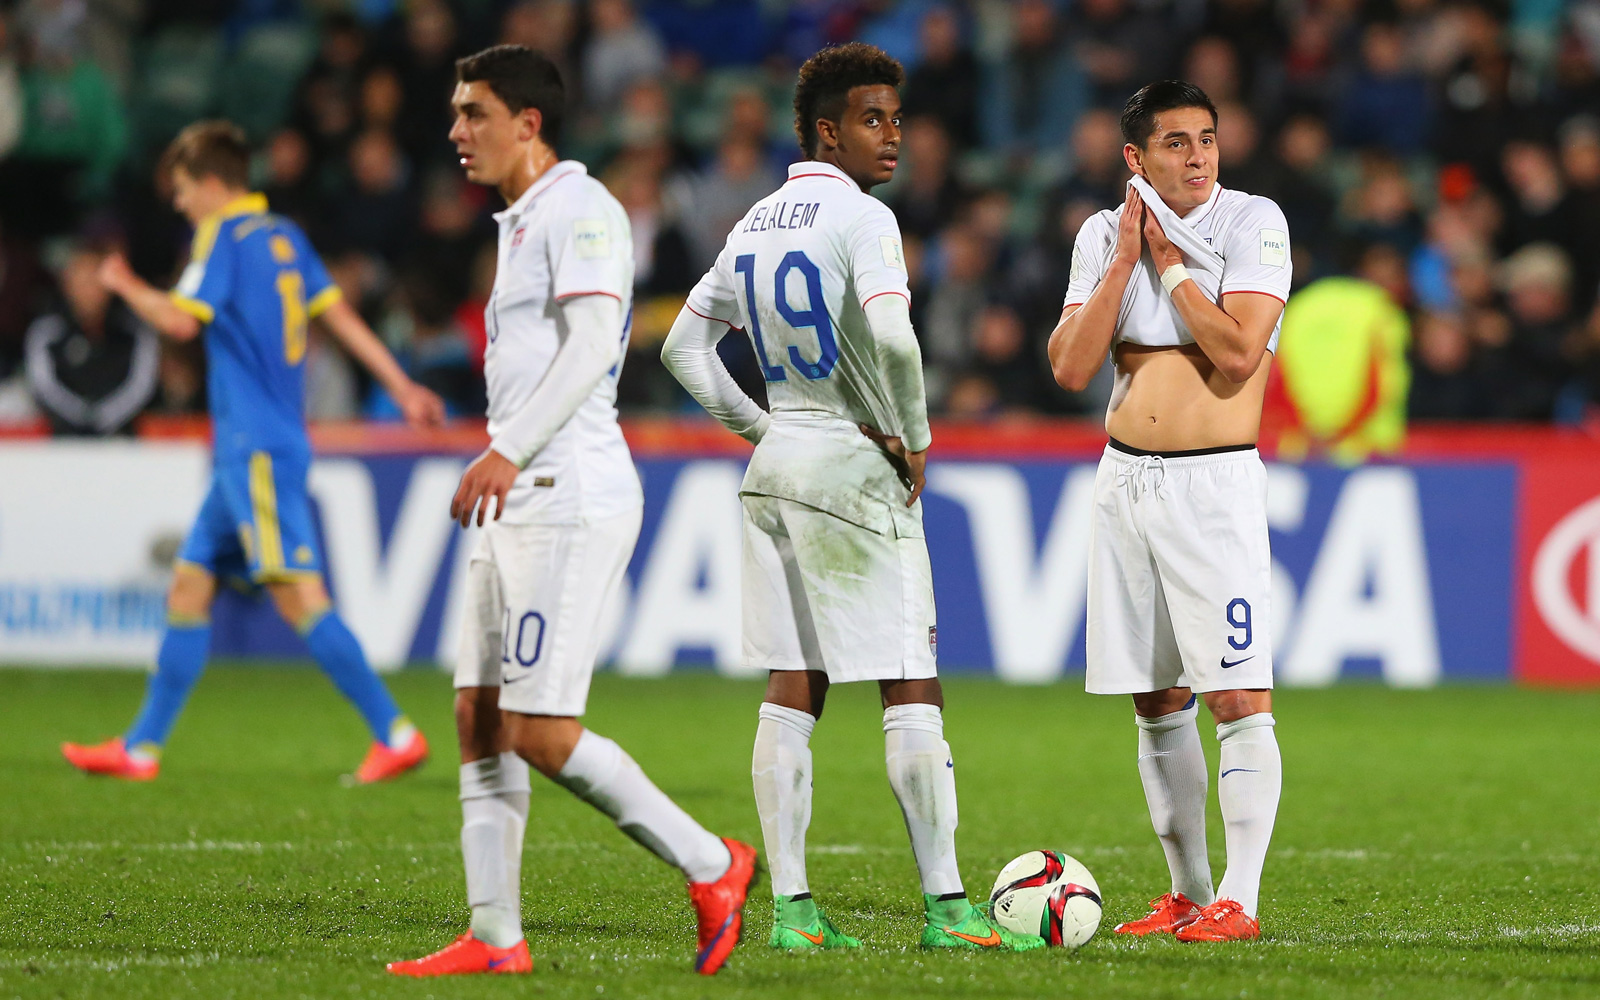 From left, Joel Soñora, Gedion Zelalem and Rubio Rubin show frustration during a 3-0 loss to Ukraine that wrapped up group play in the U-20 World Cup.